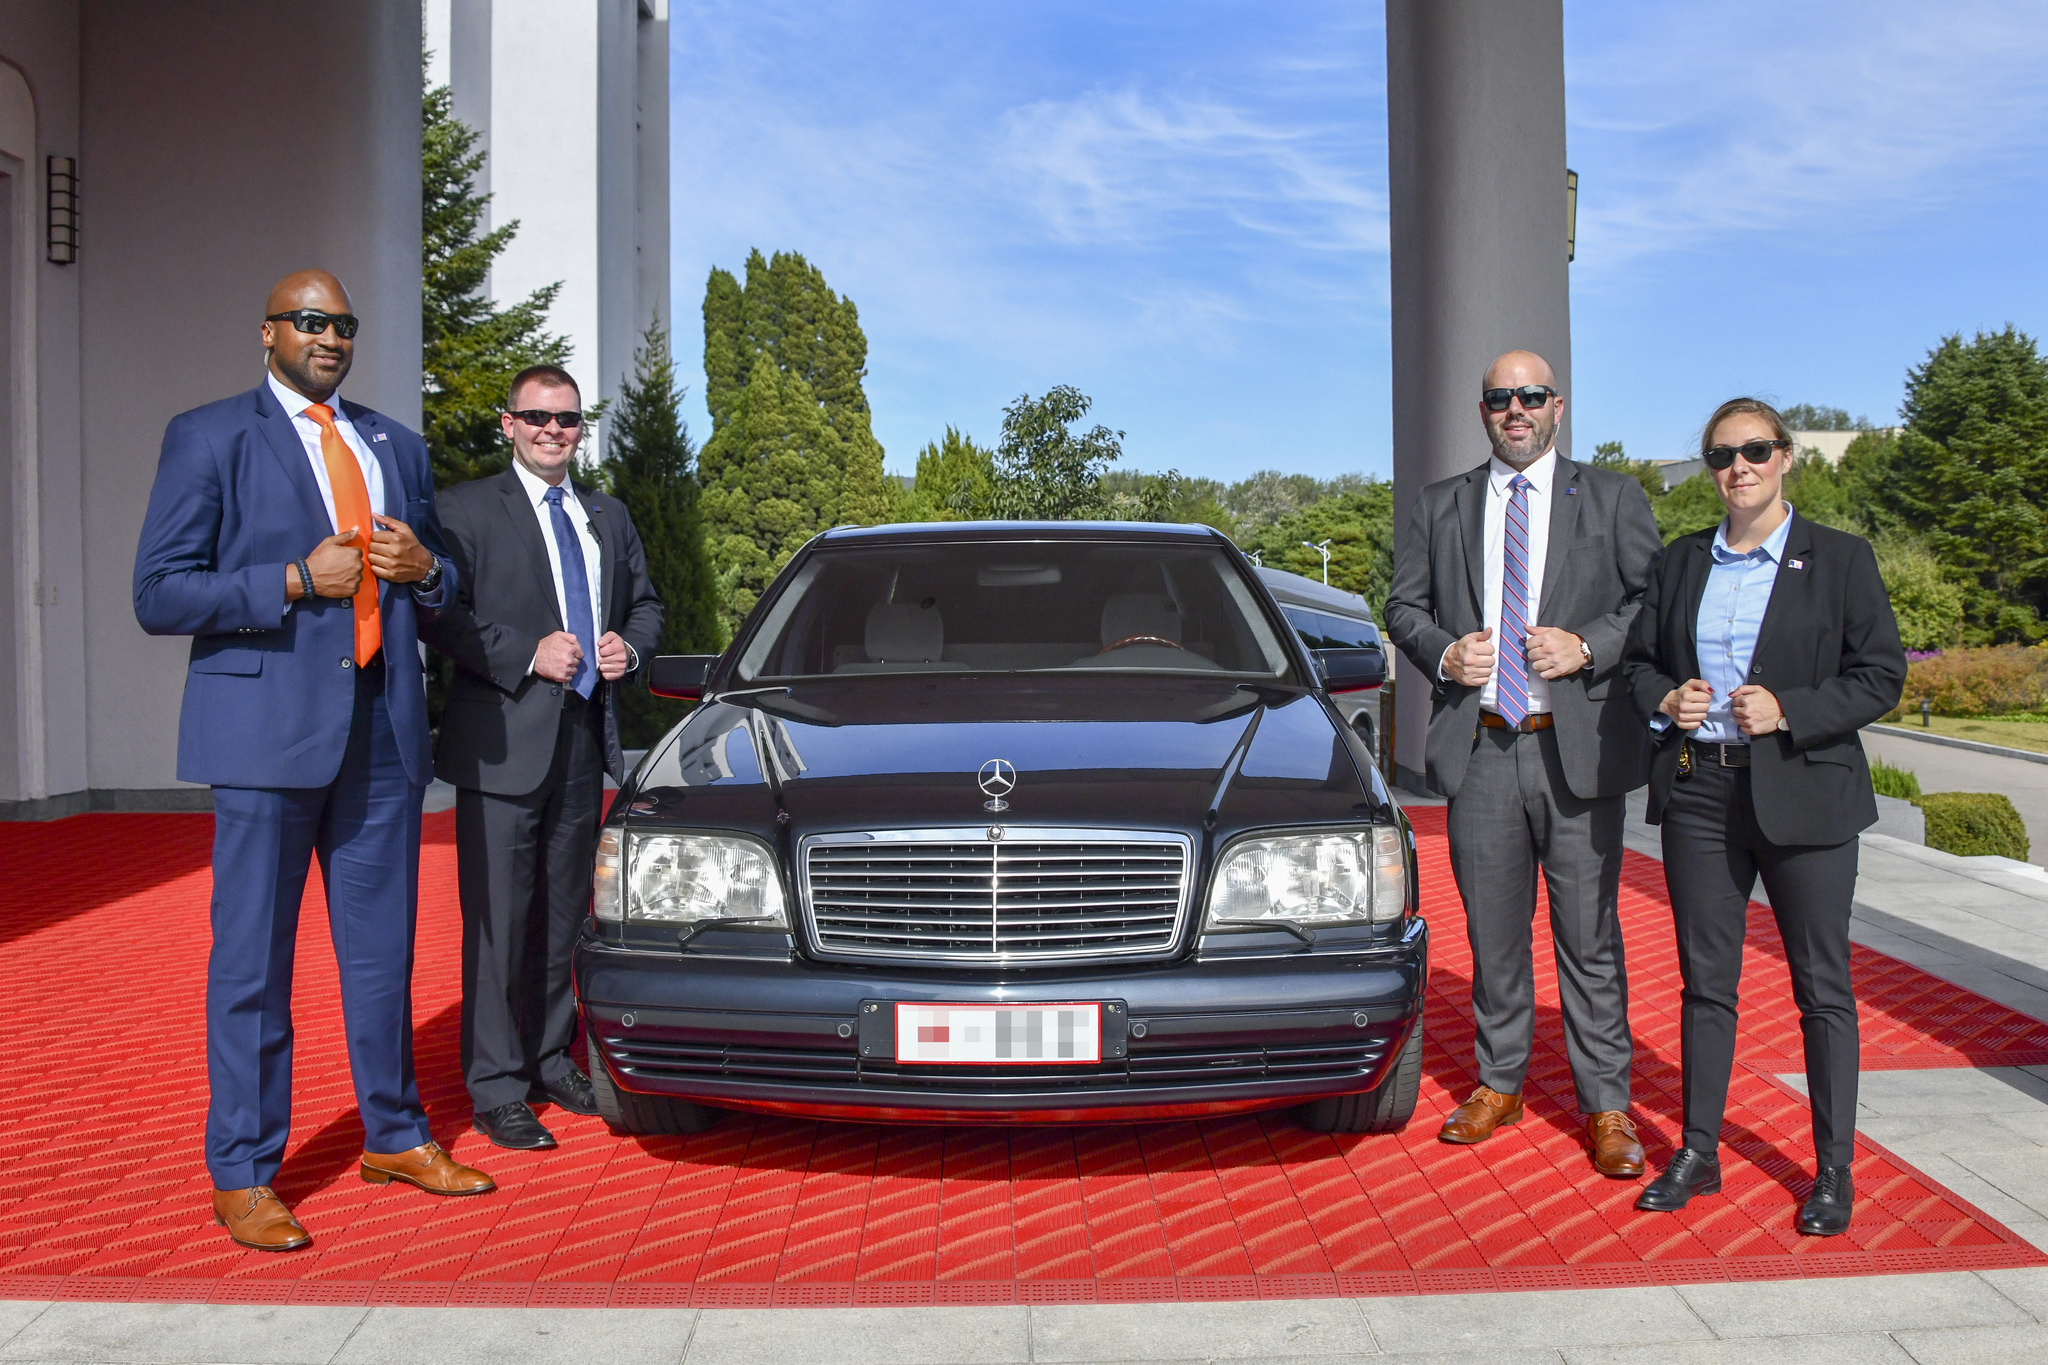 Diplomatic Security Service (DSS) agents surround a late 1990s S600 used to transport State Department head Mike Pompeo to meet with Kim Jong Un in Pyongyang.